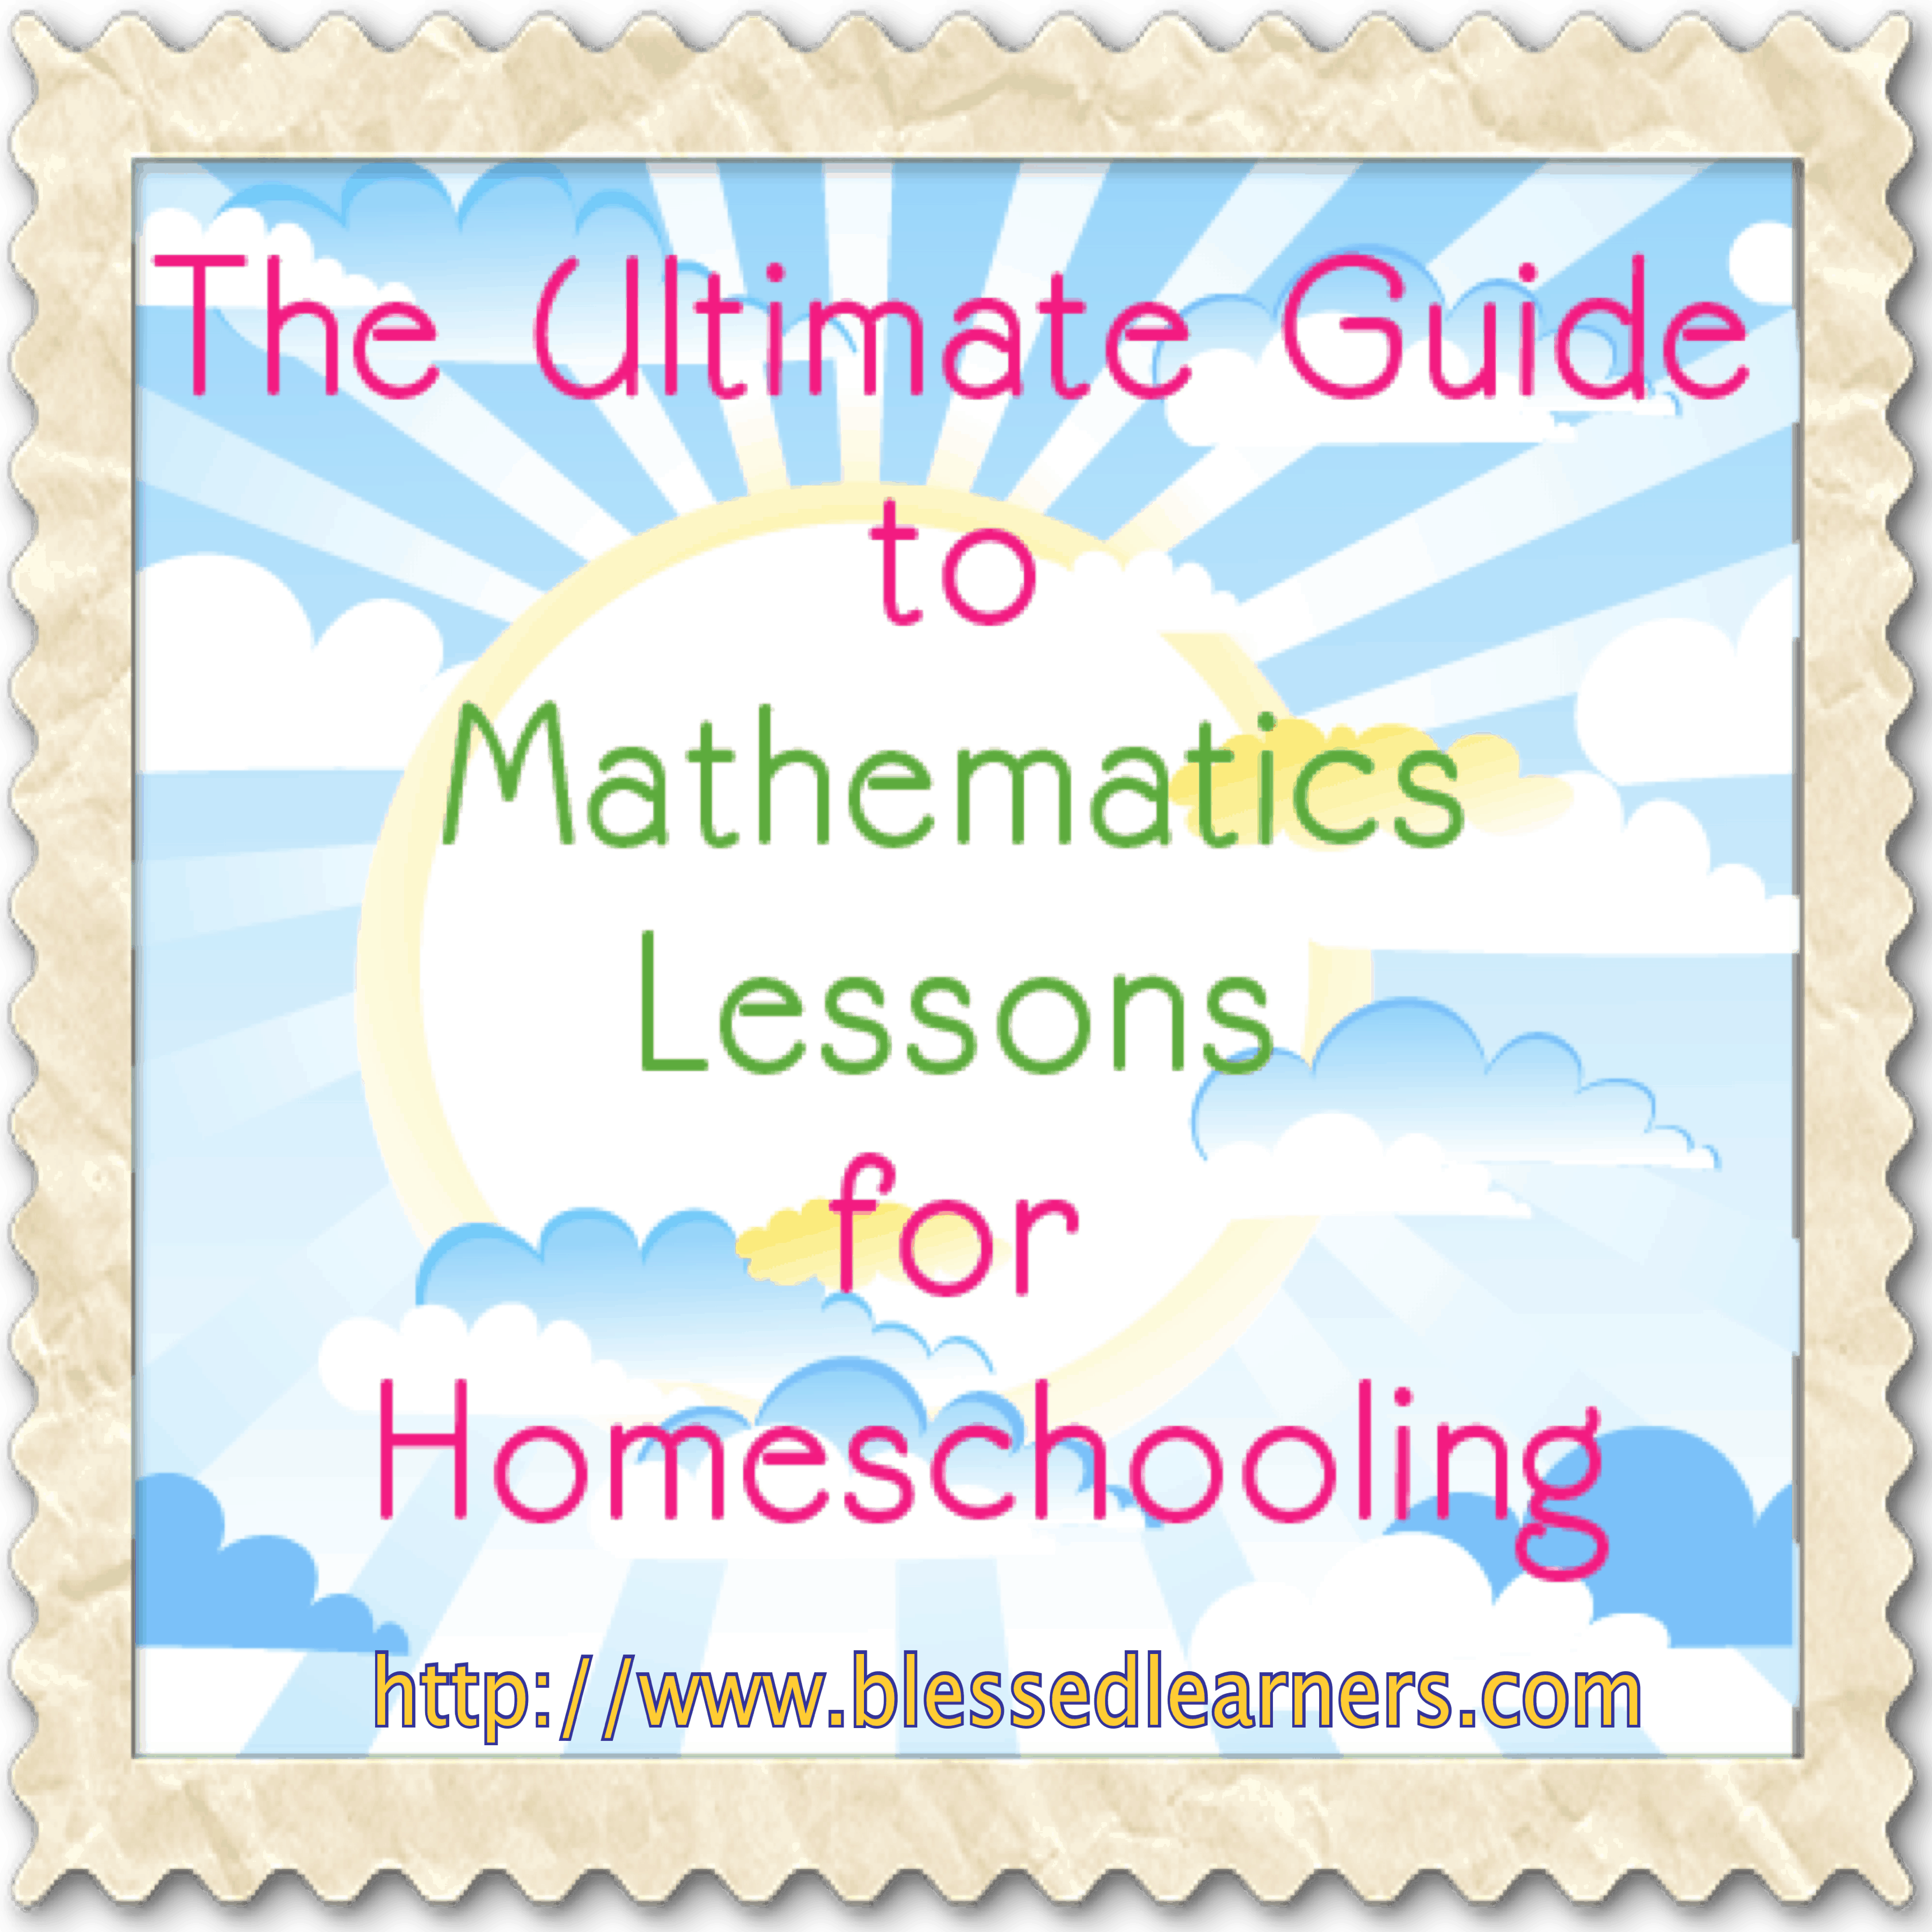 The Ultimate Guide to Mathematics Lessons for Homeschooling